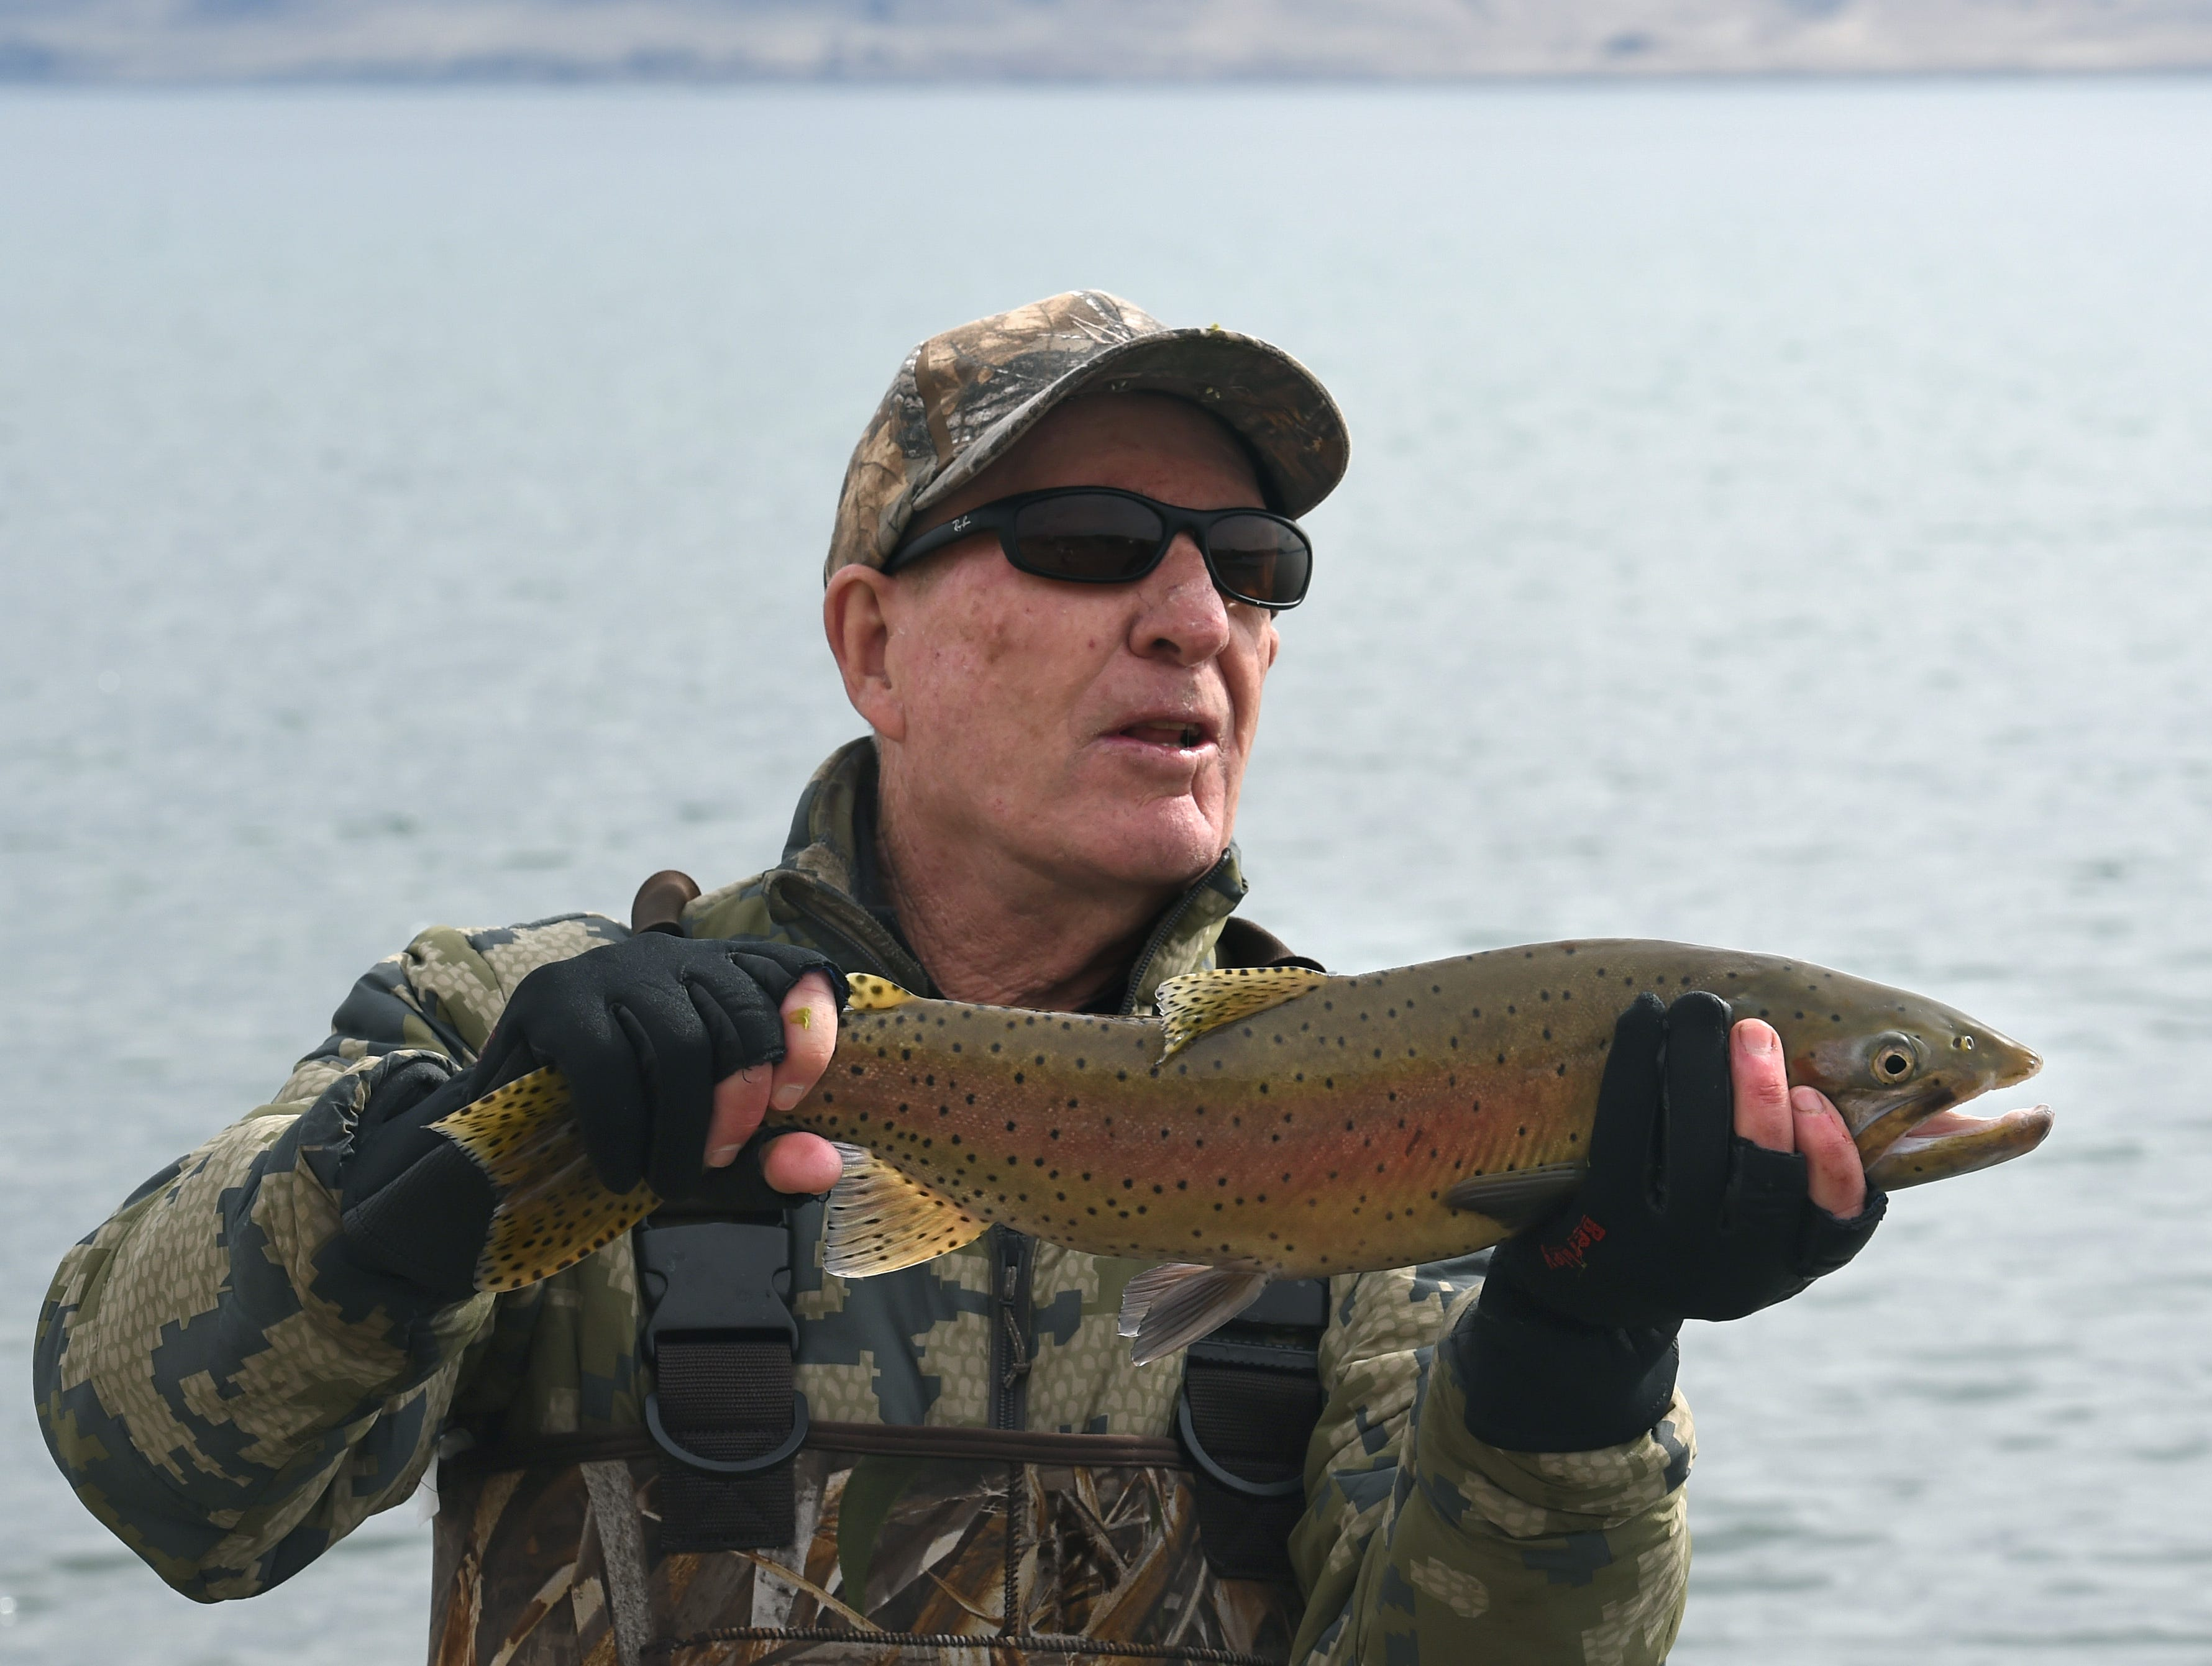 Joe Carolla of Reno poses for his friend to take a photo of him with the Cutthroat Trout he caught at Pyramid Lake this fall.